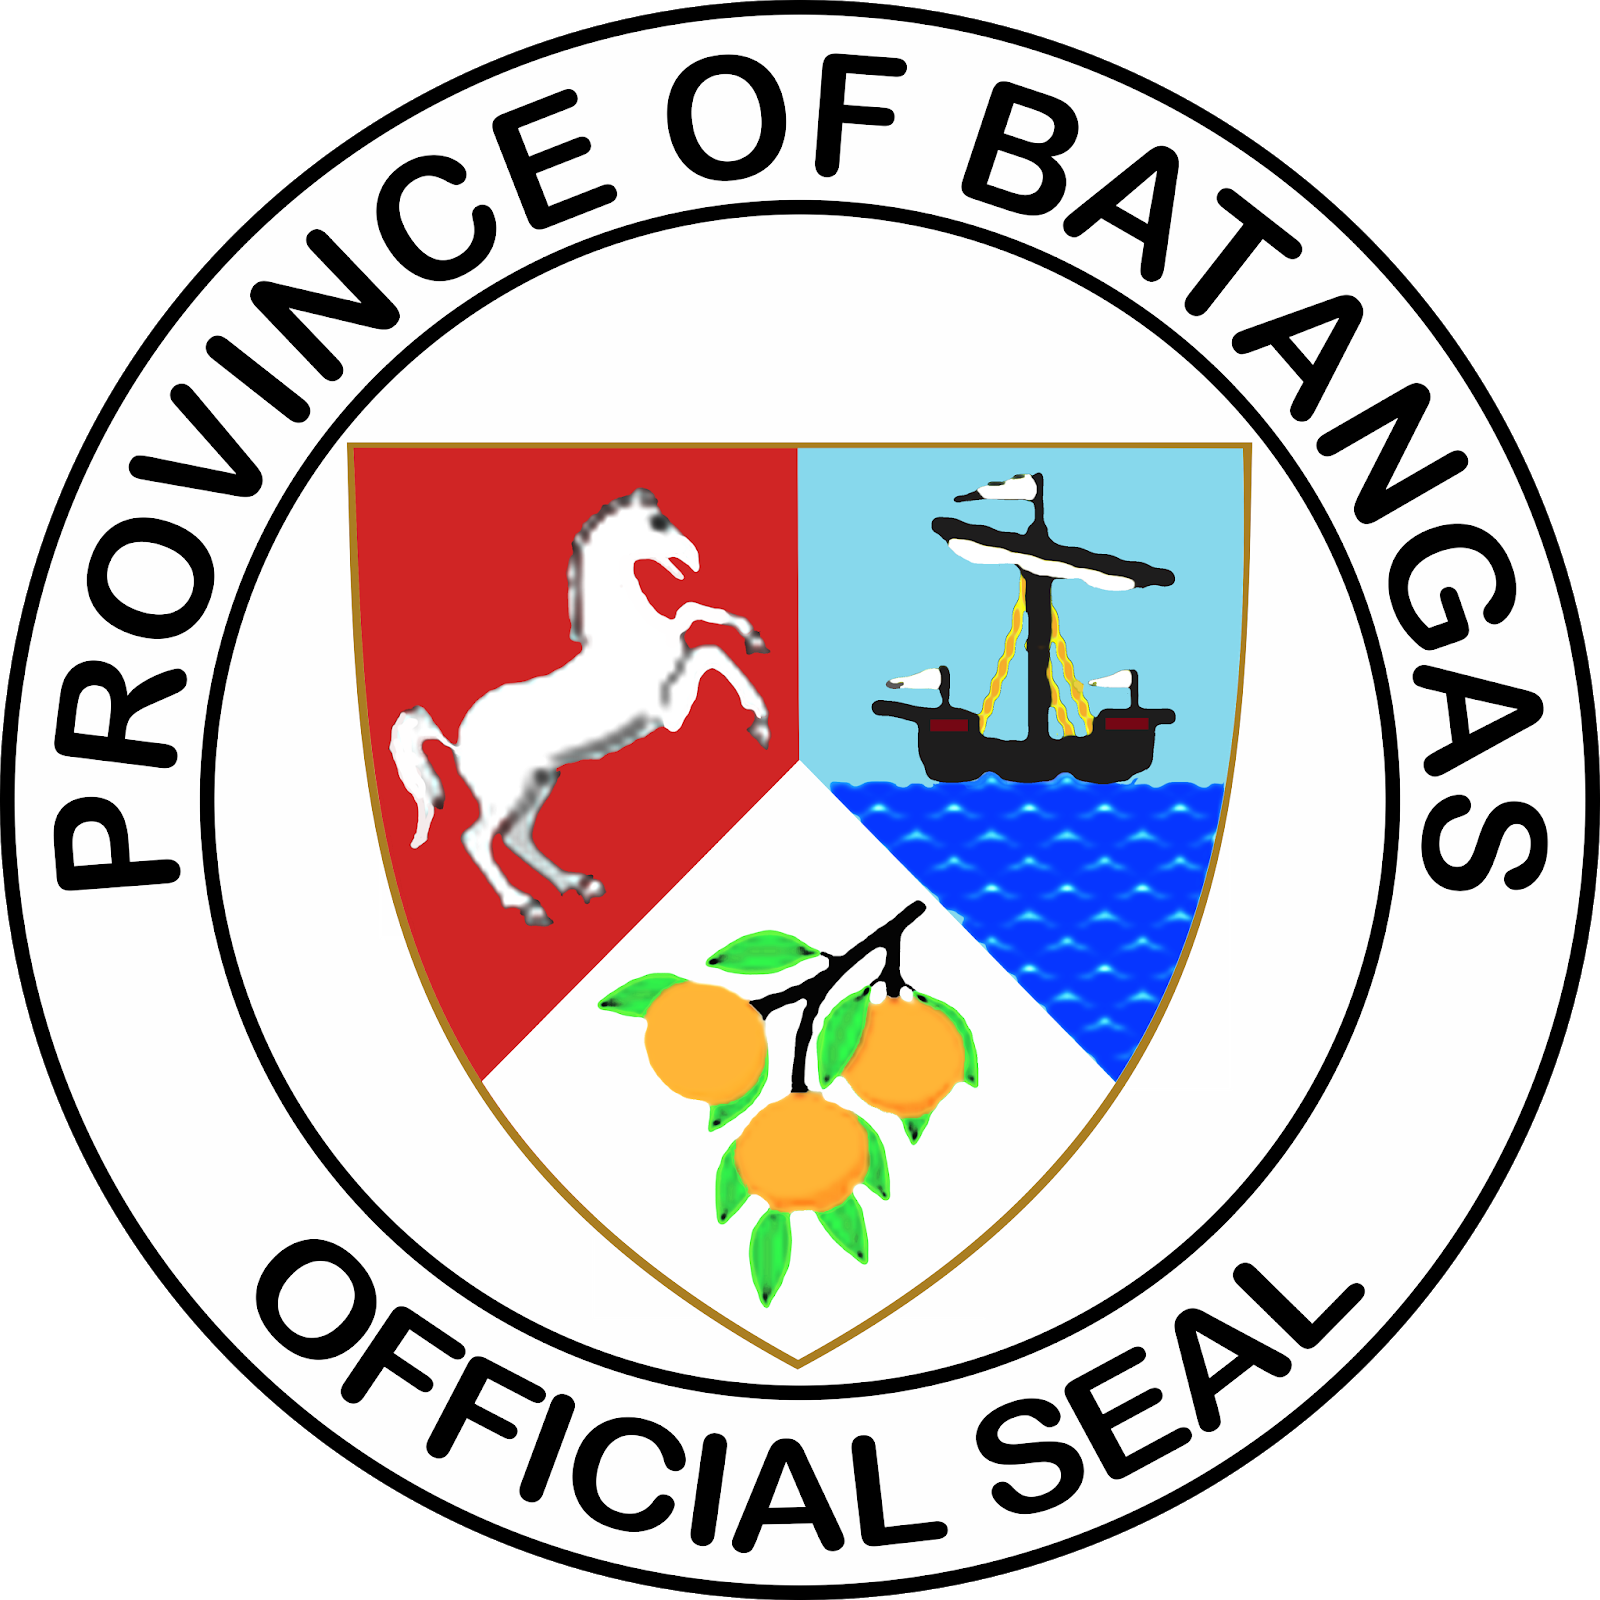 Province of Batangas Official Seal